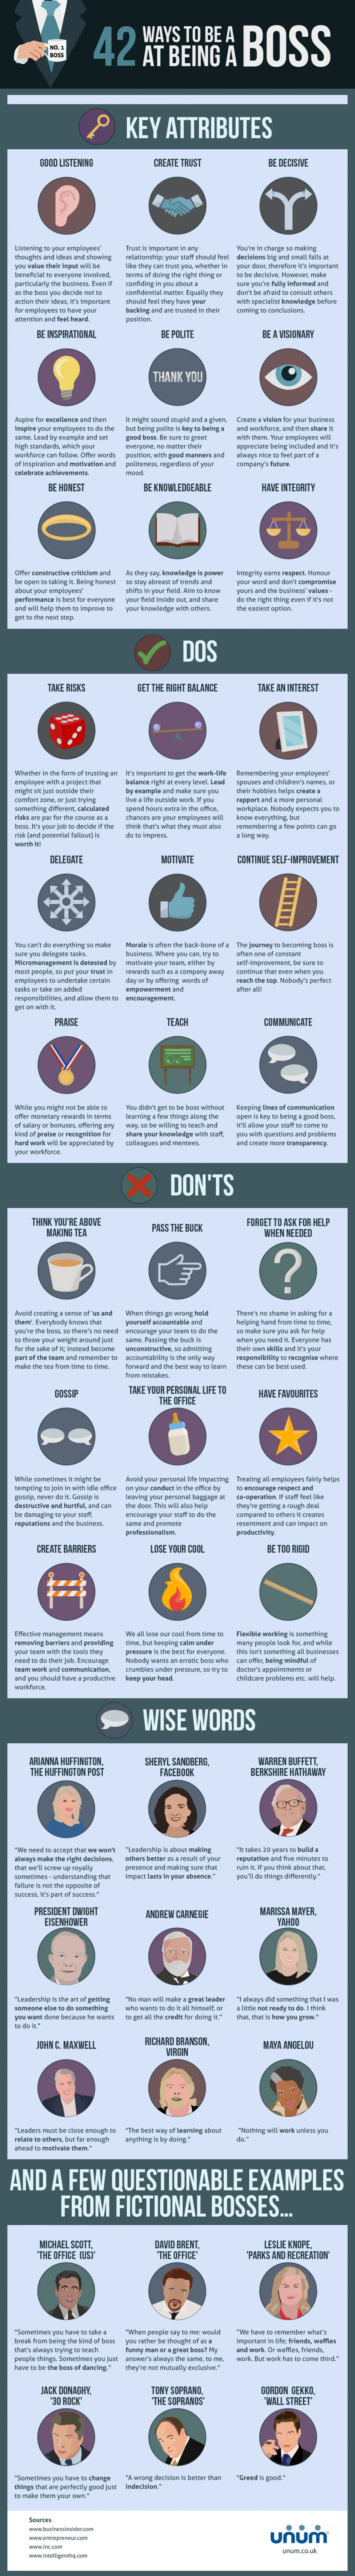 42 Ways to be a Boss at Being a Boss Infographic